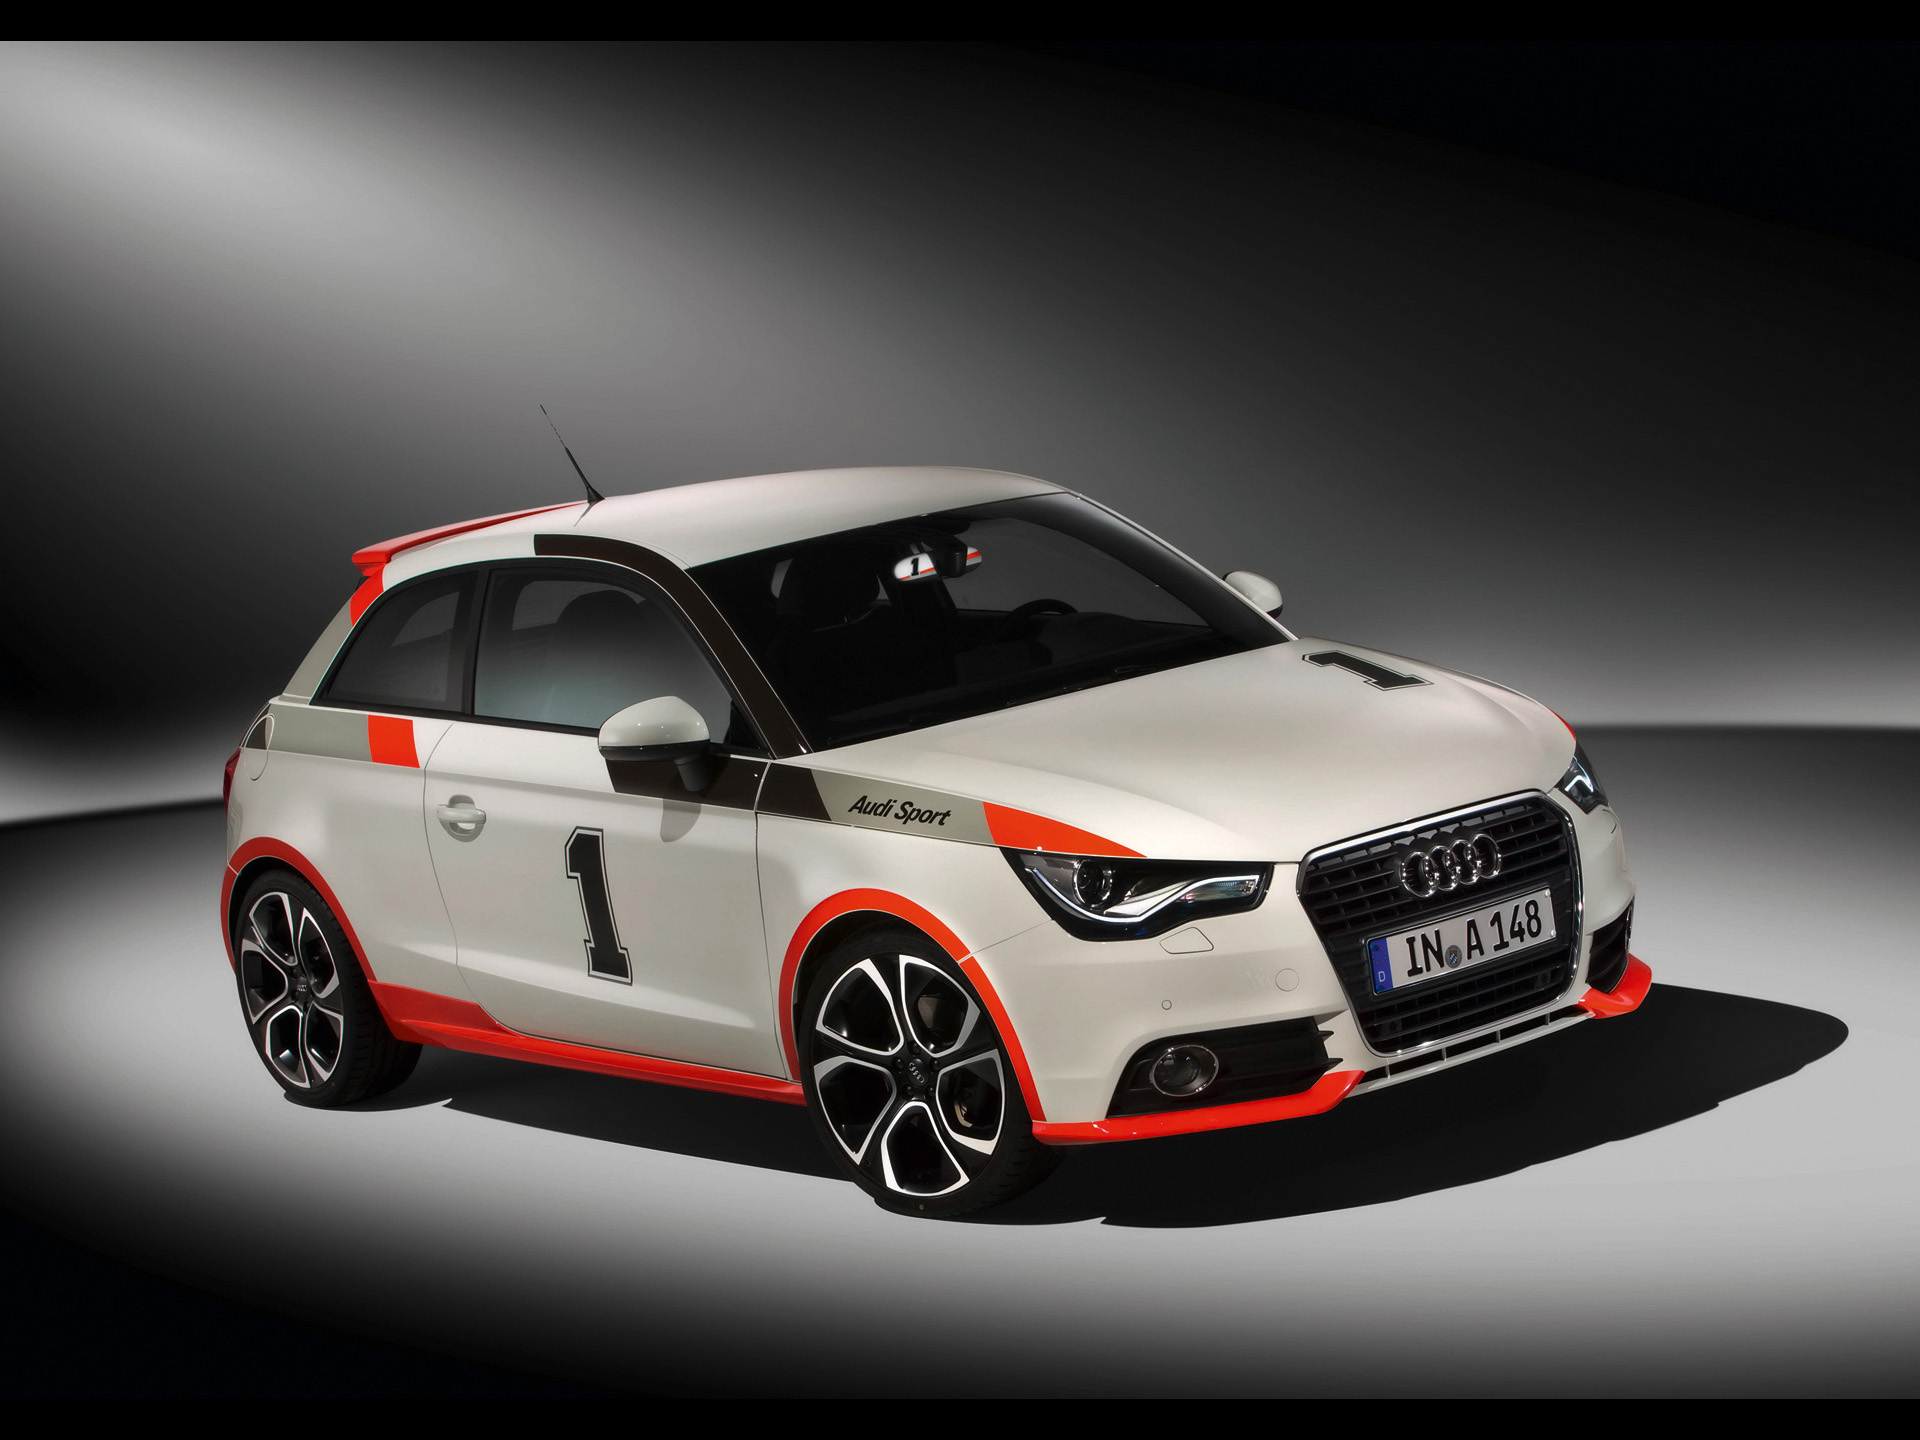 1920x1440 - Audi A1 Wallpapers 35